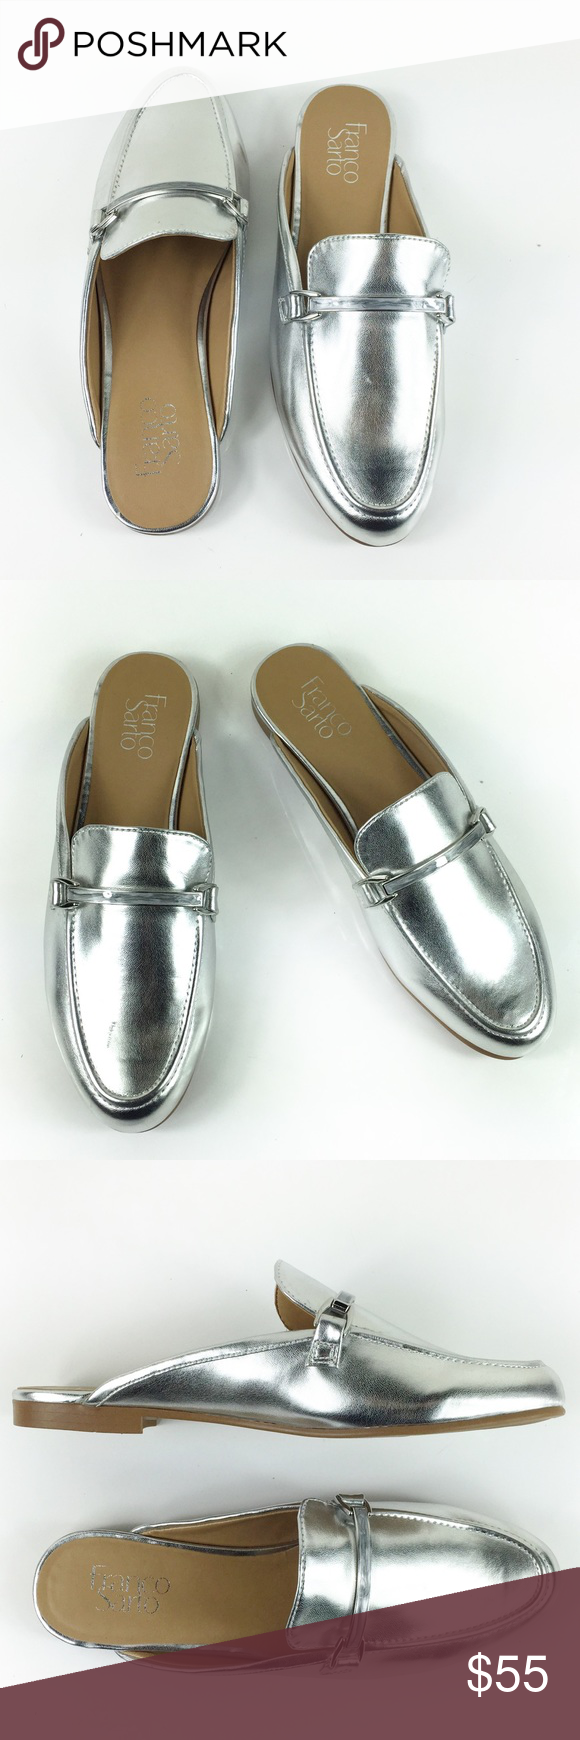 1a91ce17ad7 Finalprice🔥franco sarto pippa slip on loafers nwt in 2018